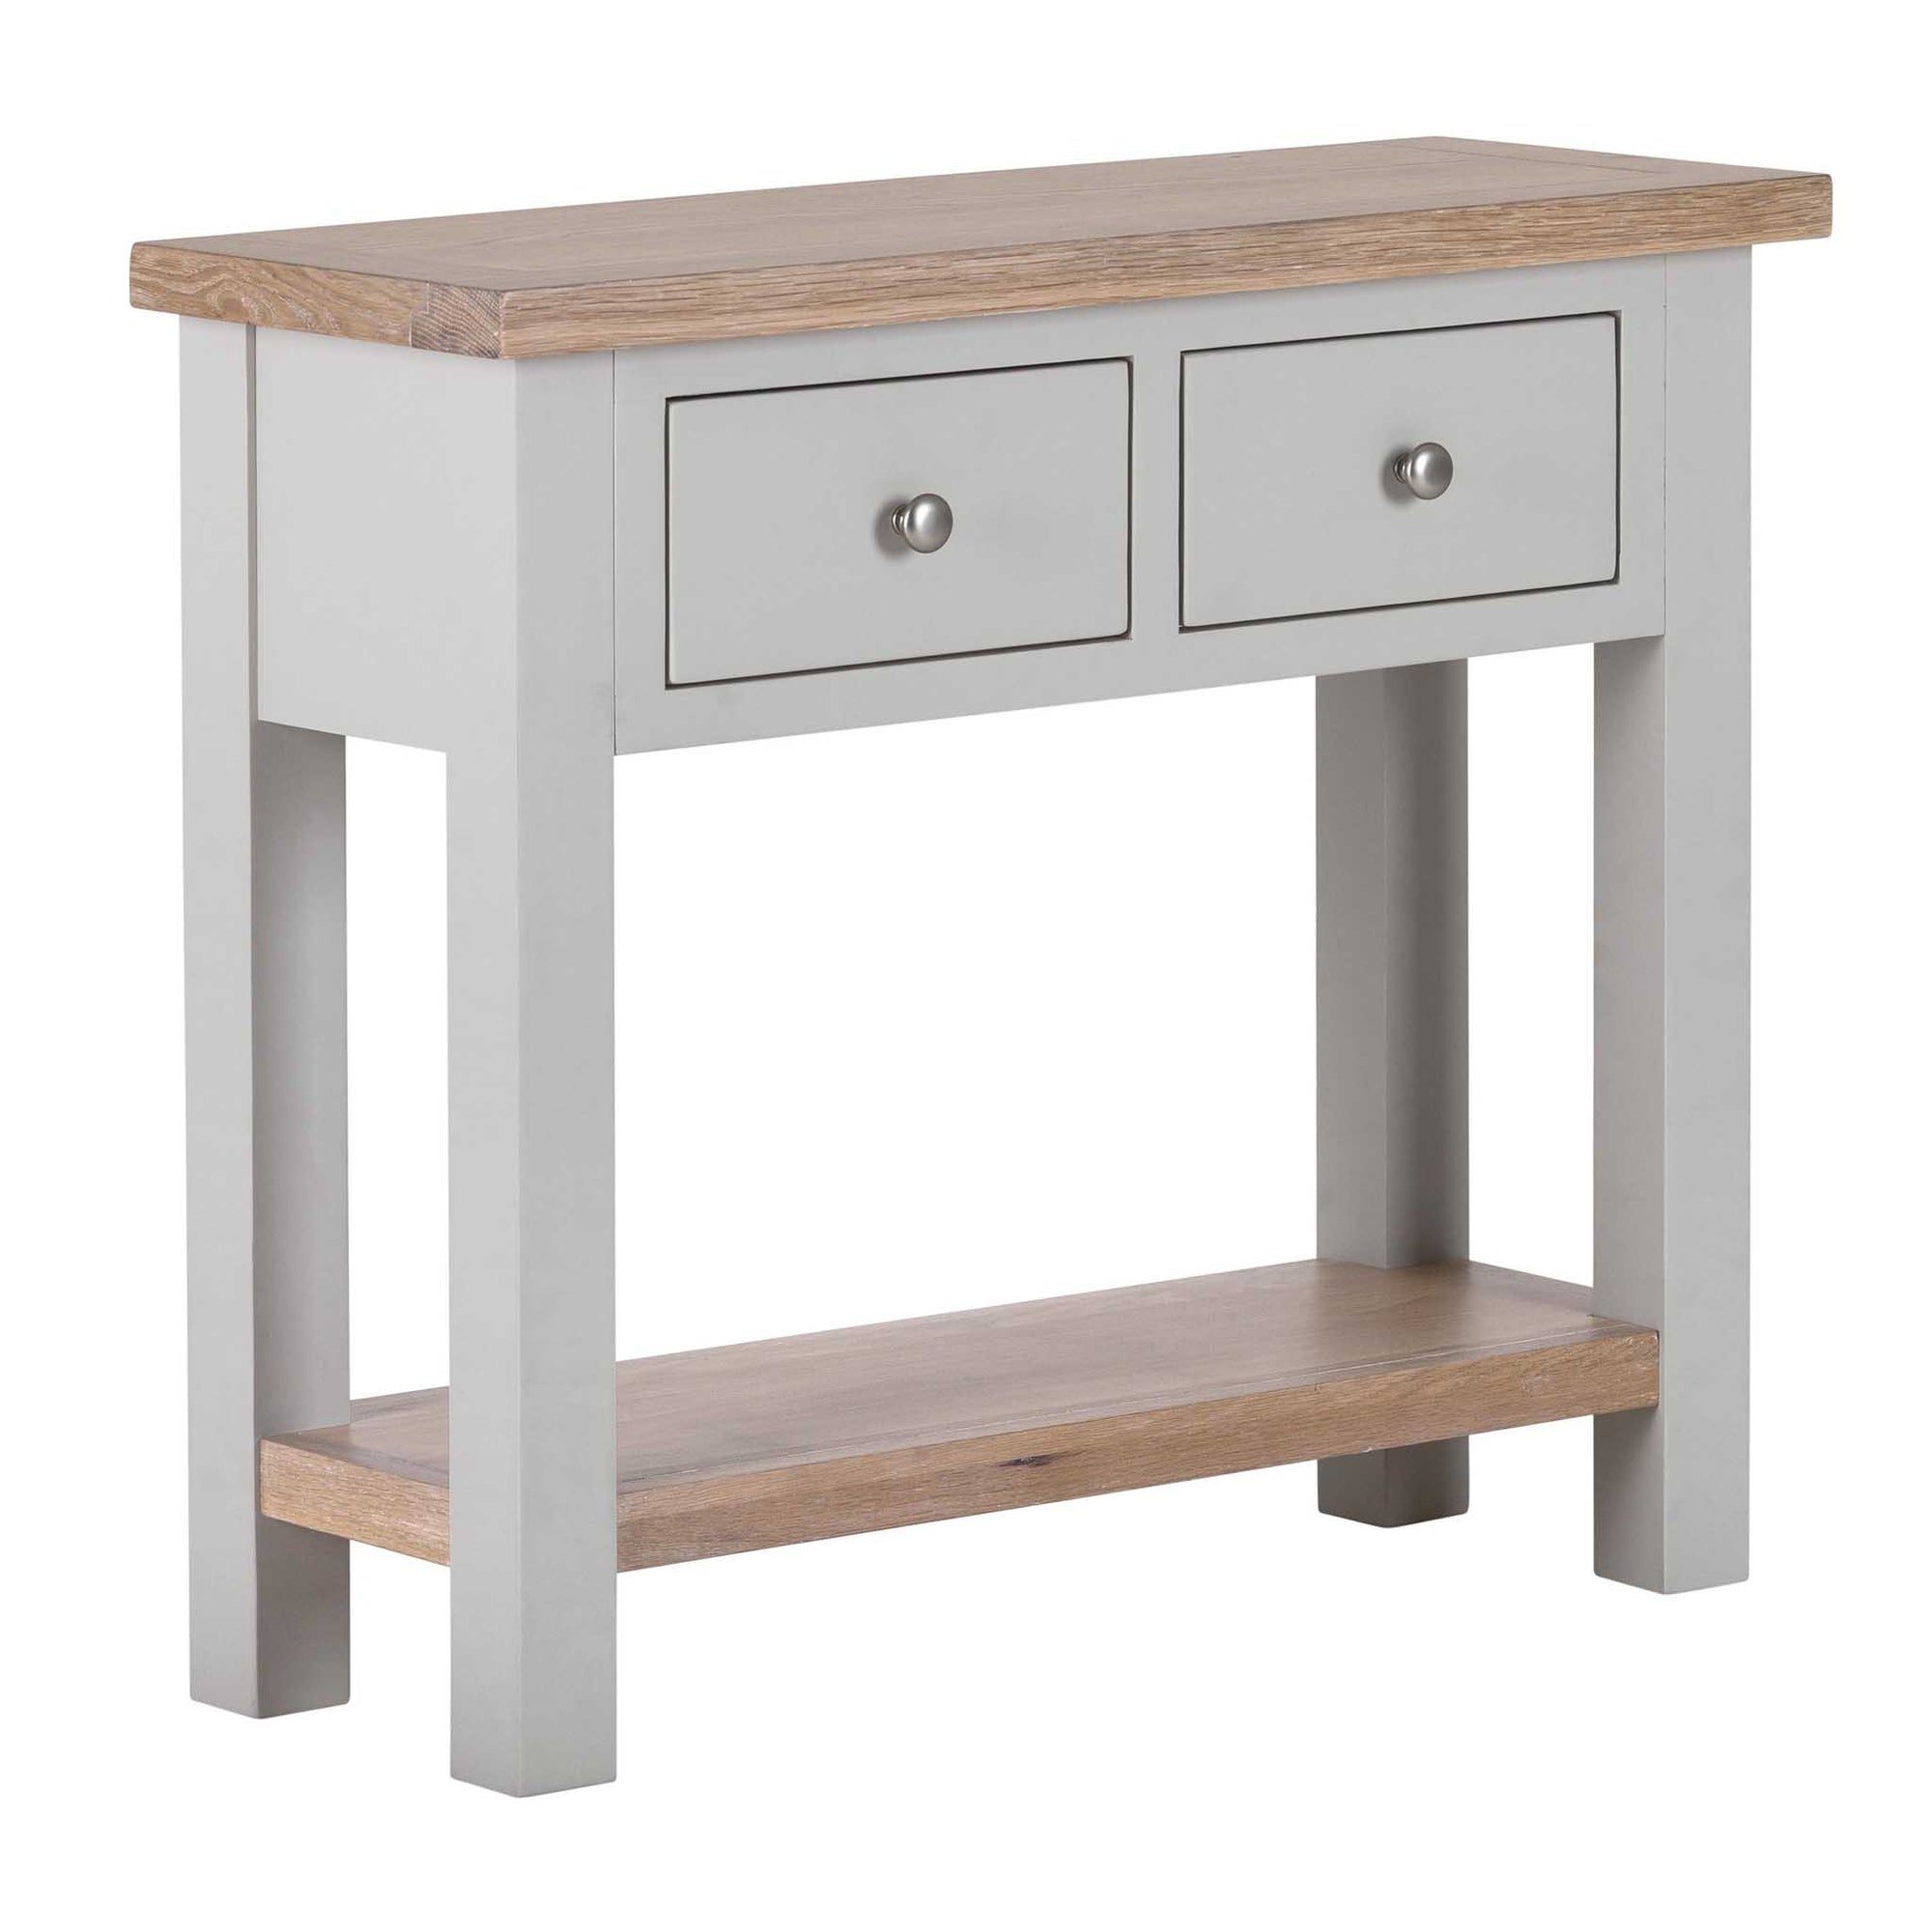 Charlestown Grey Console Table with Oak Top from Roseland Furniture